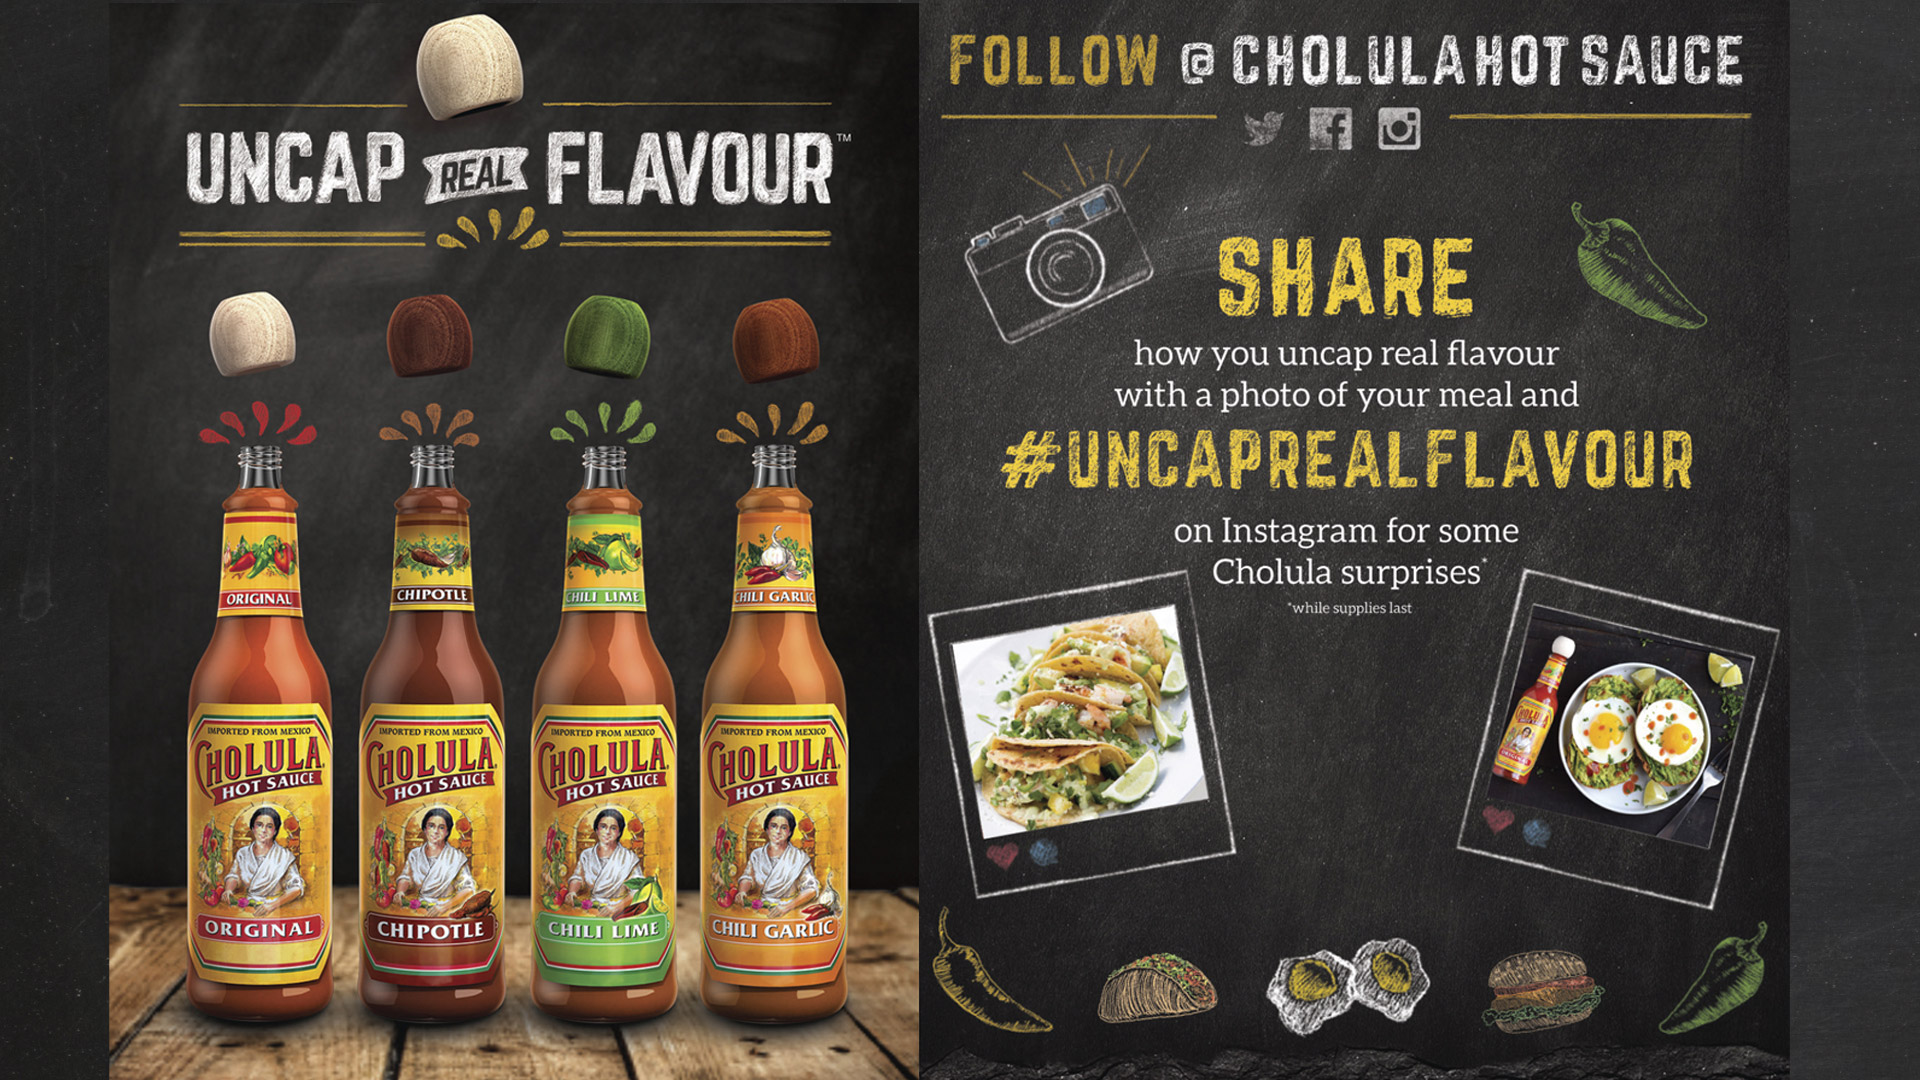 Cholula Hot Sauce Selection - Fuse Marketing